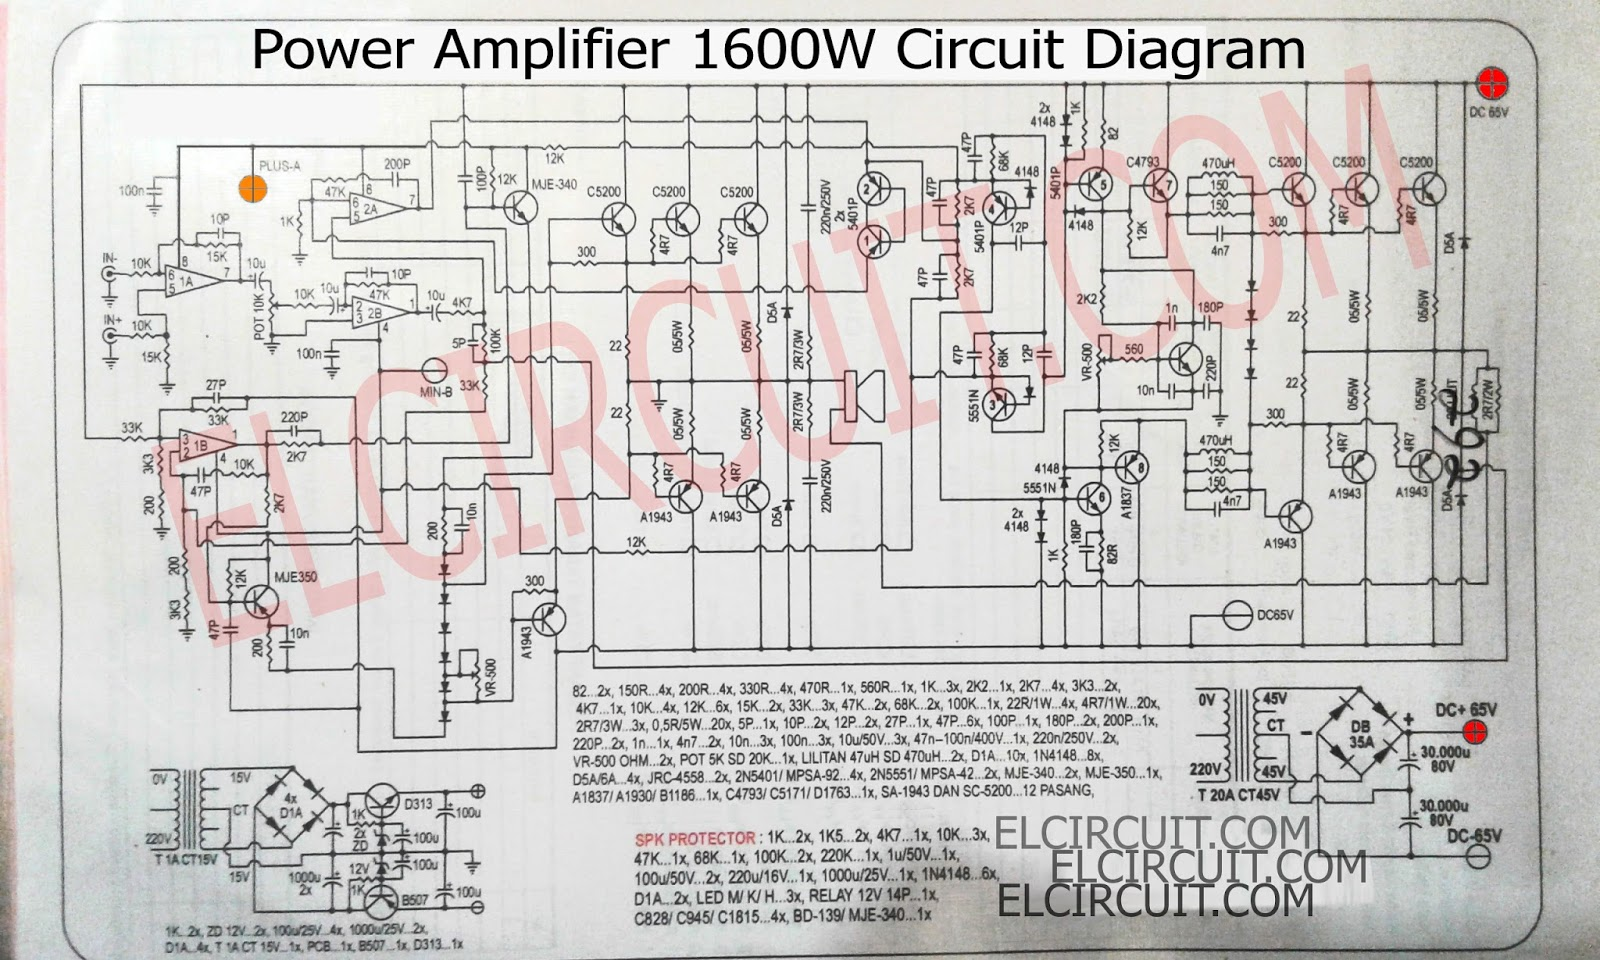 Amplificador Electronic Circuit Diagram Basic Guide Wiring 1000w Power Amplifier Circuits 1600w High Complete Pcb Layout Simple Electrical Diagrams